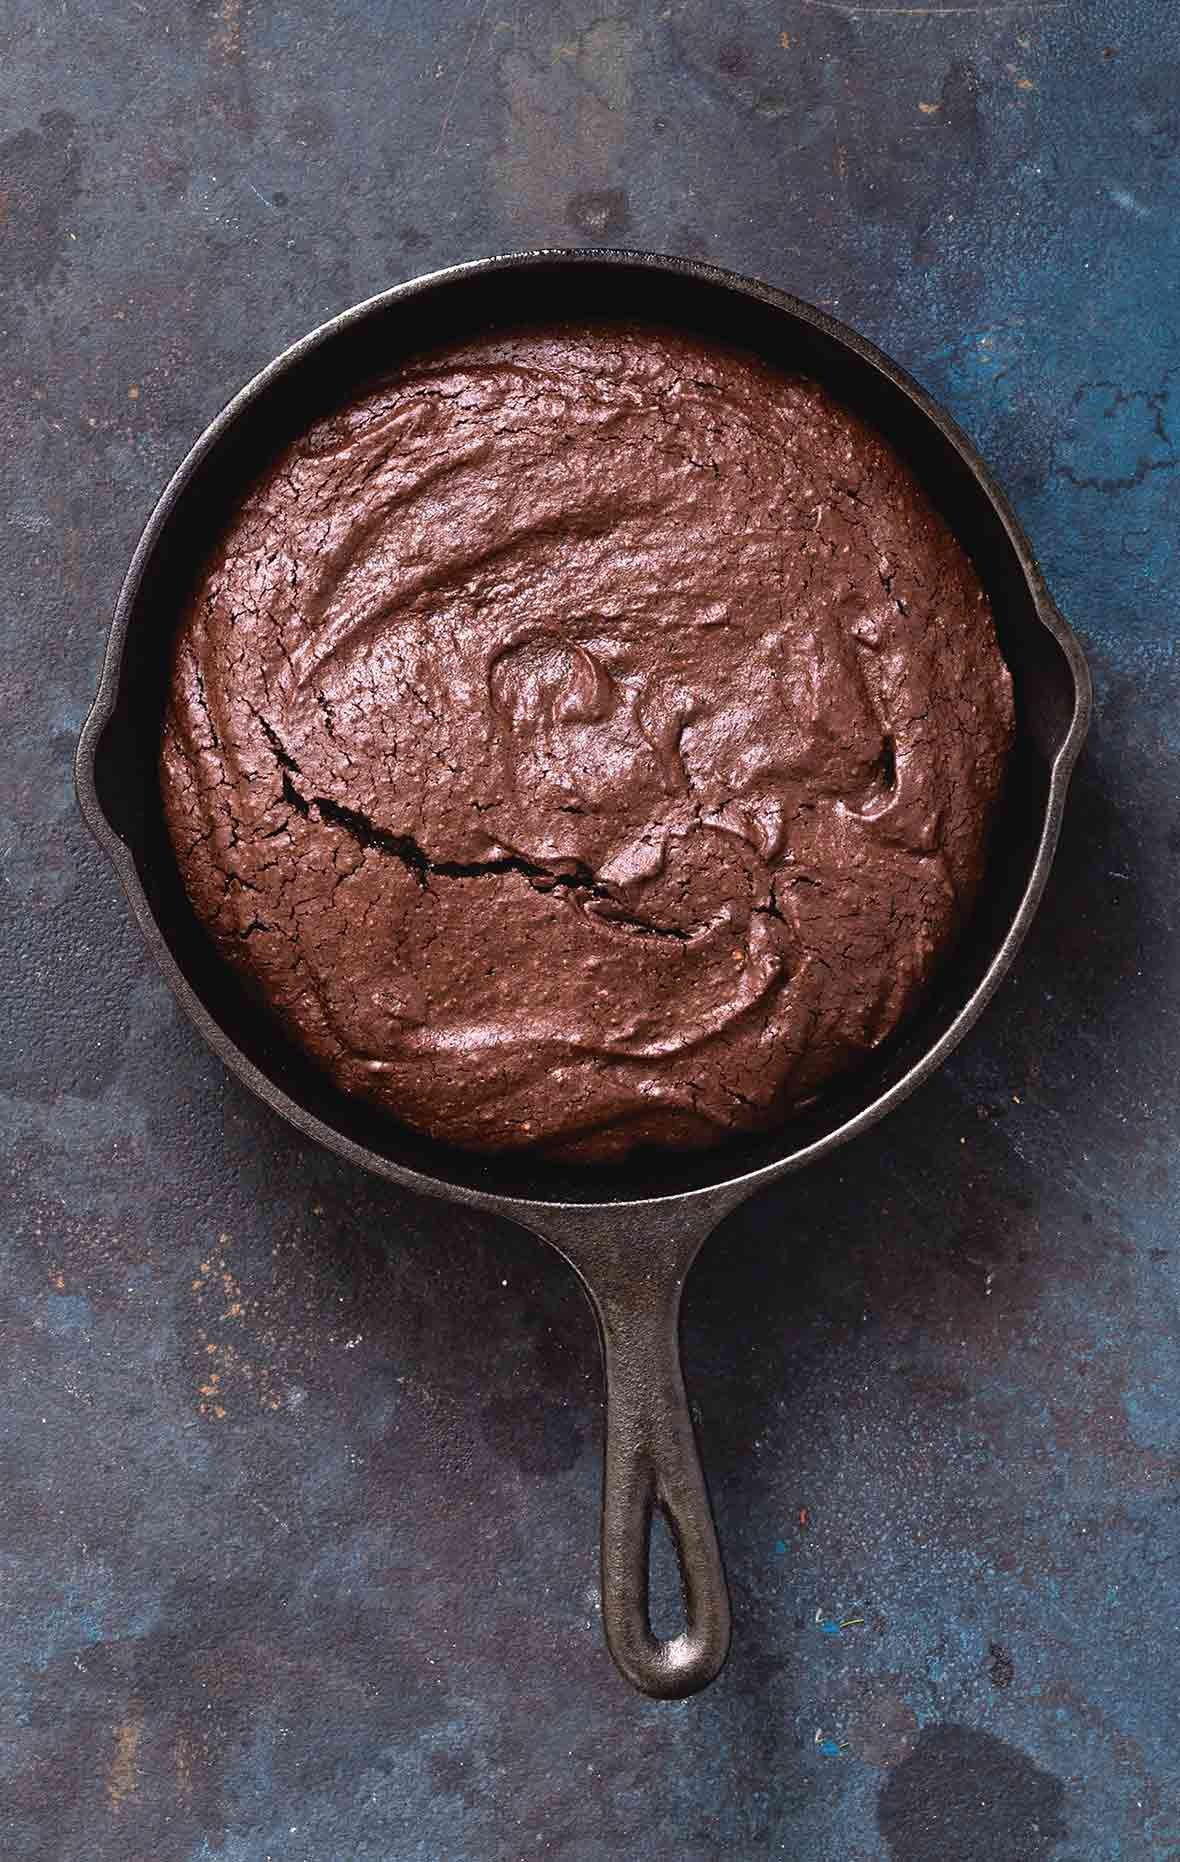 A cast-iron skillet filled with chocolate brownie